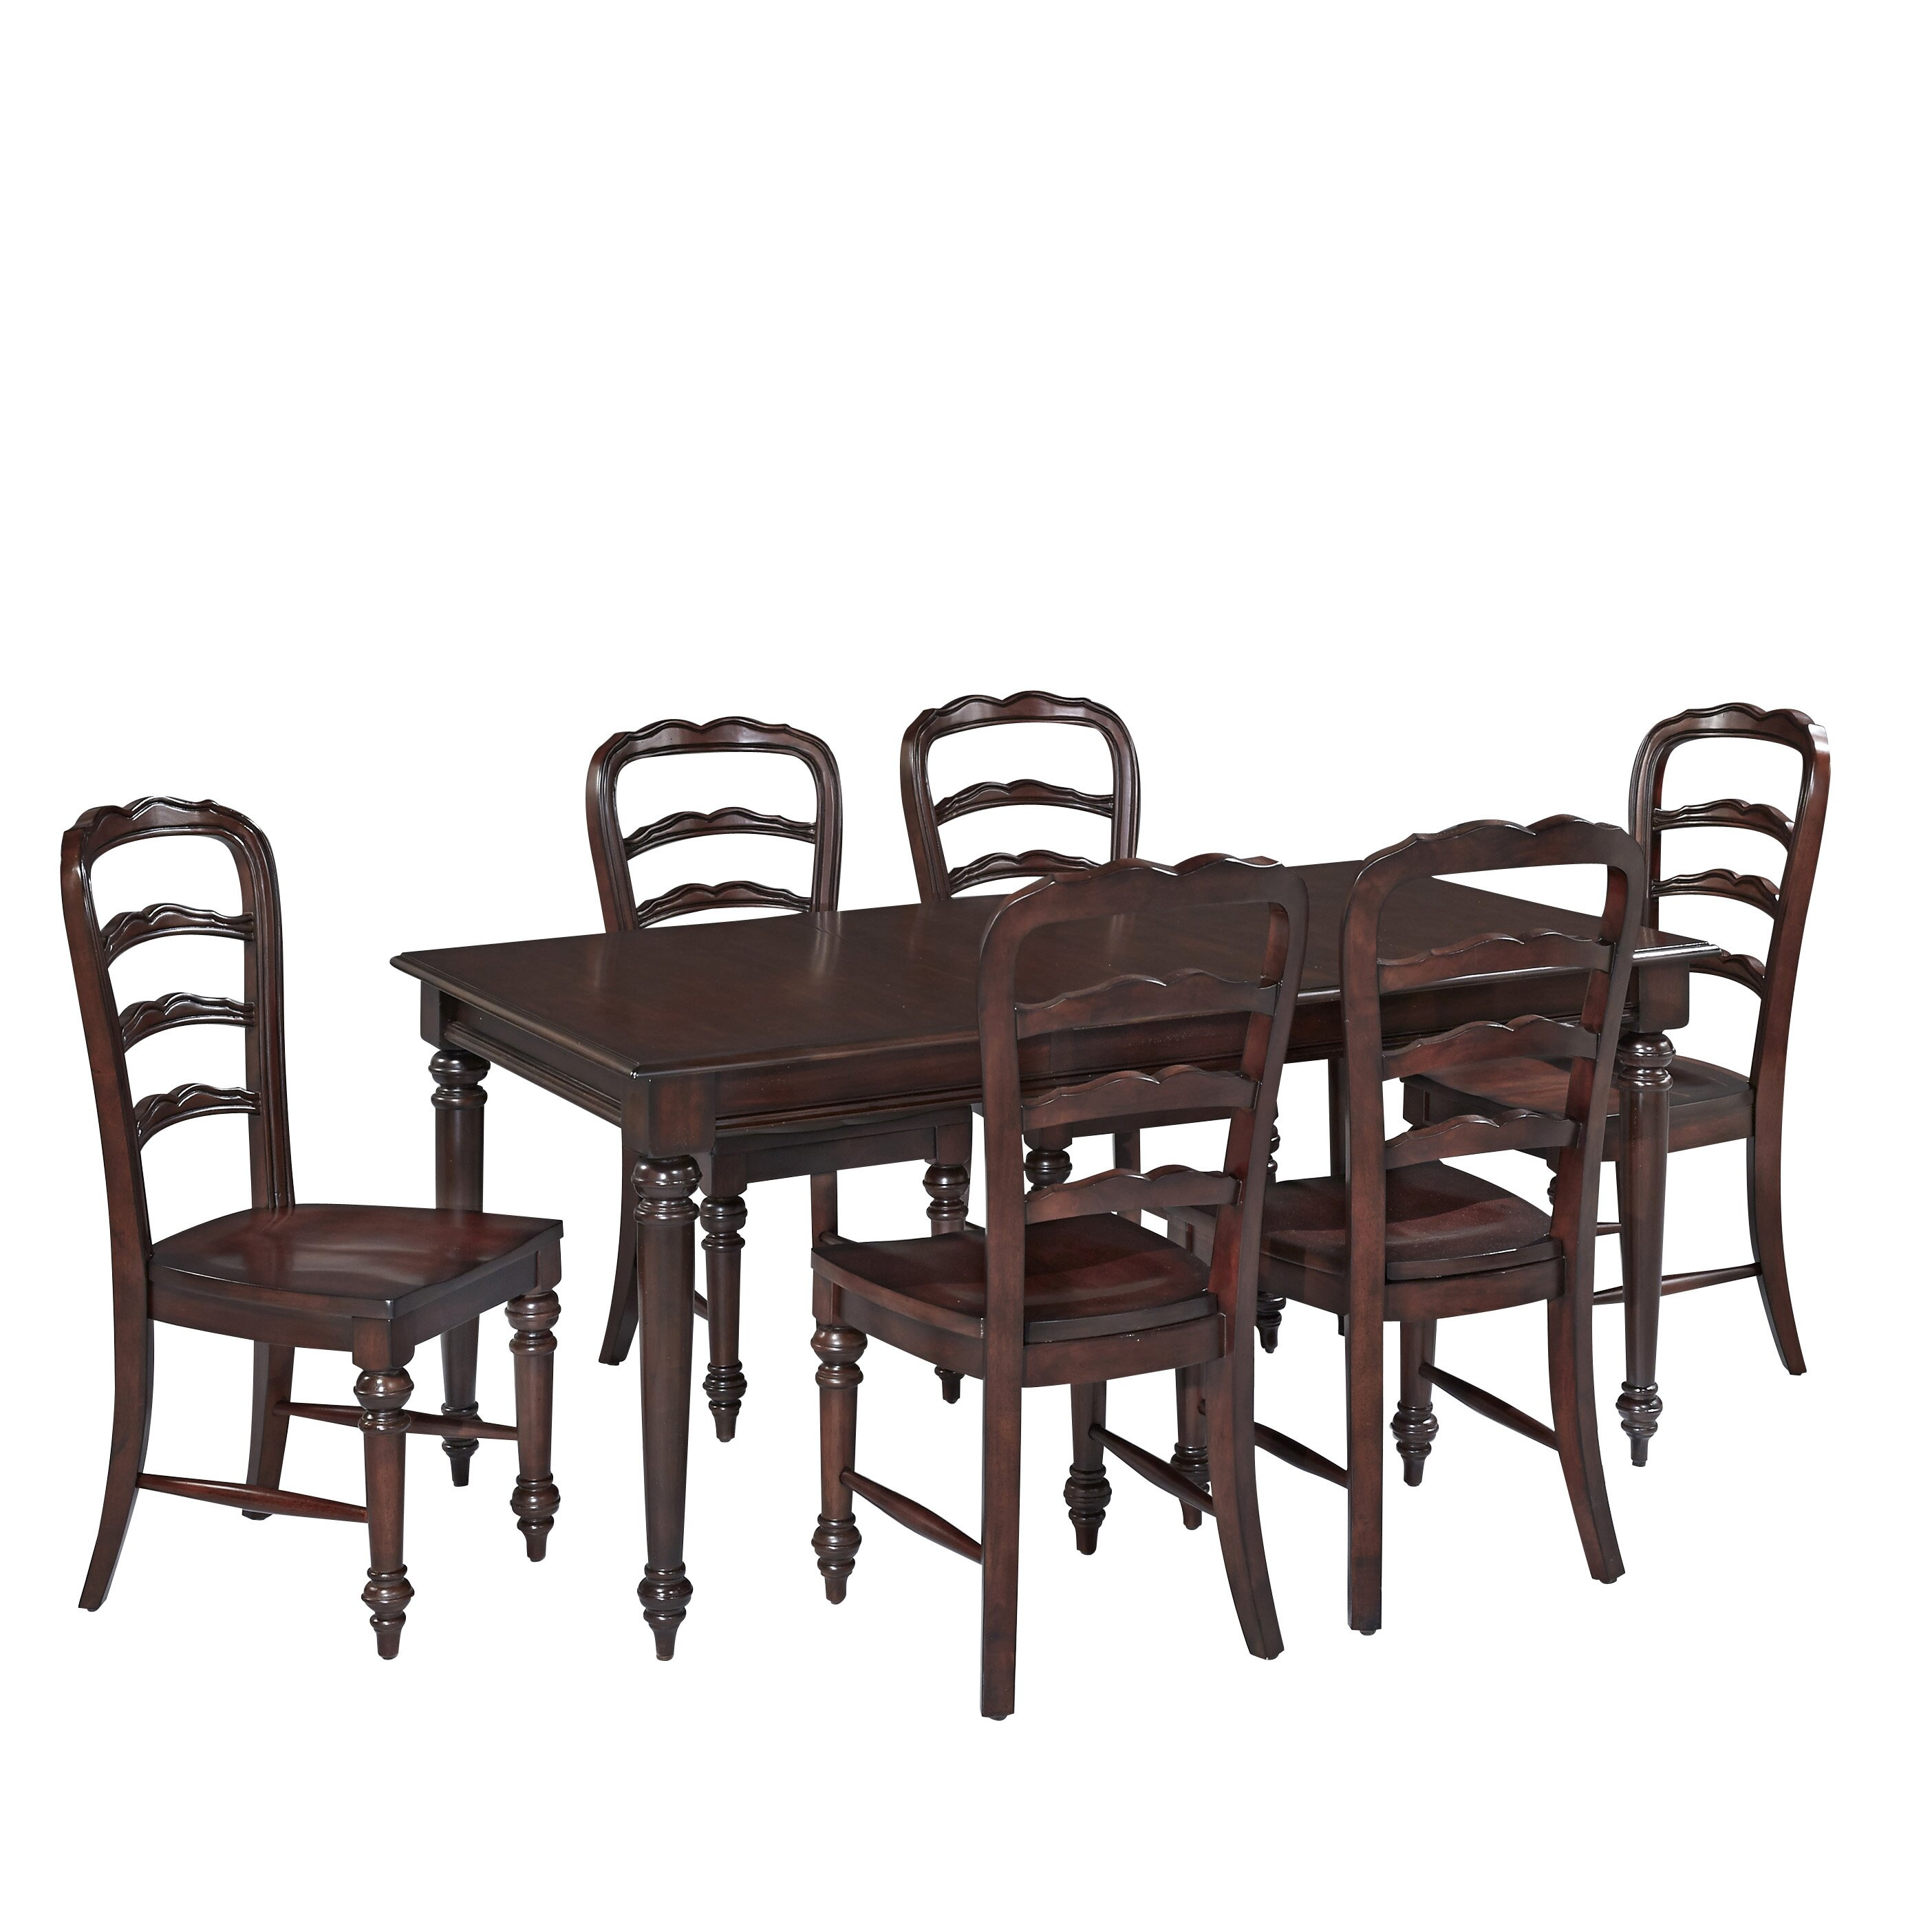 Darby Home Co Givens Extendable Dining Table amp Reviews  : Darby Home Co25C225AE Givens Extendable Dining Table from www.wayfair.com size 2808 x 2808 jpeg 575kB